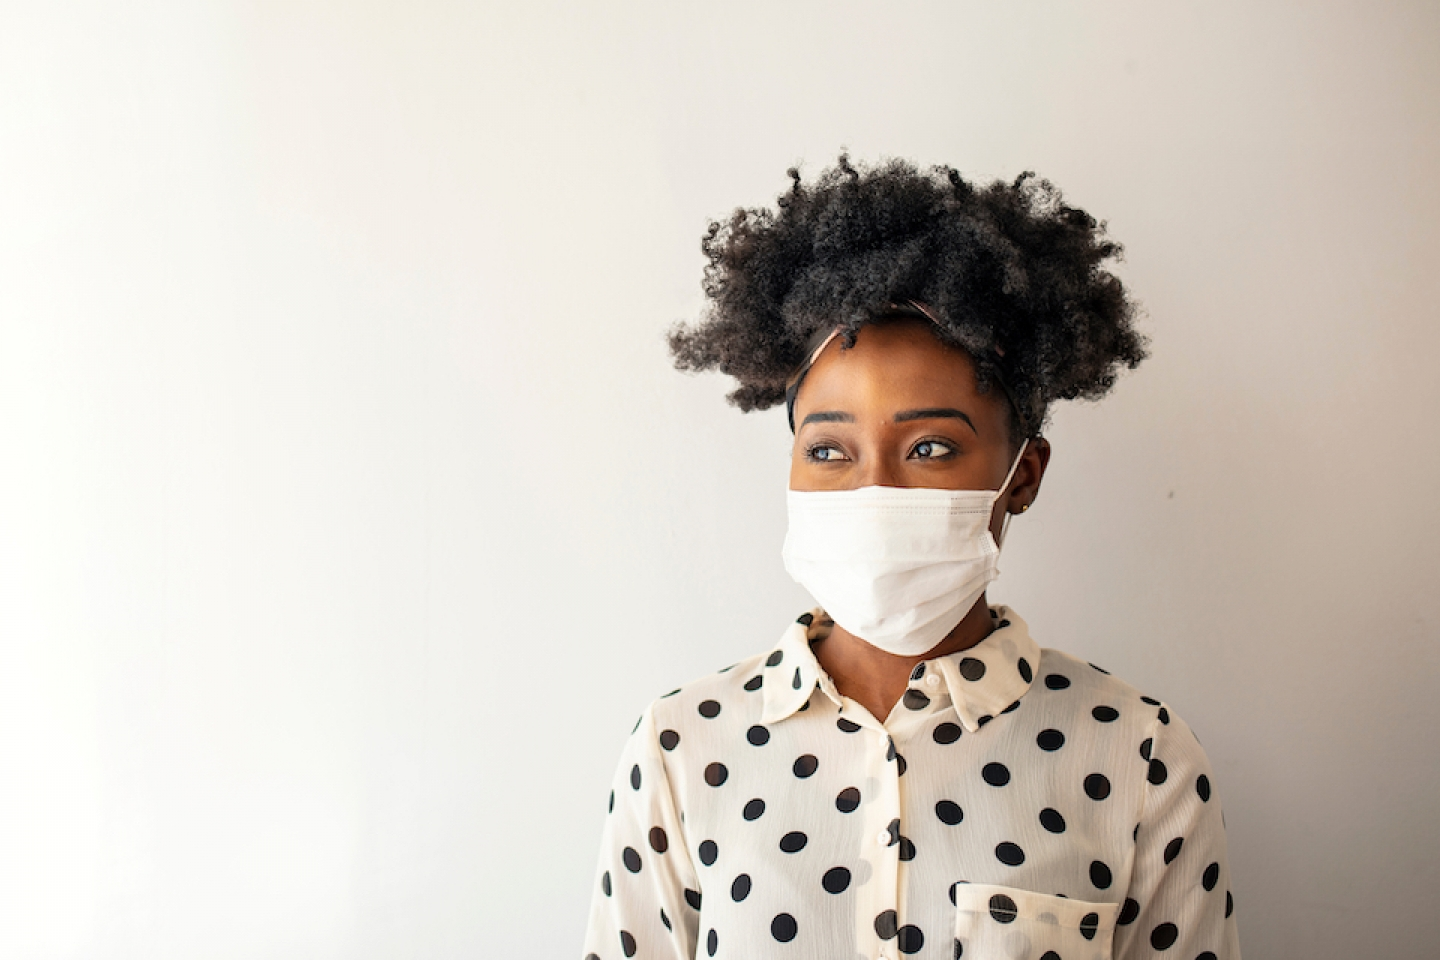 black women with her mask on